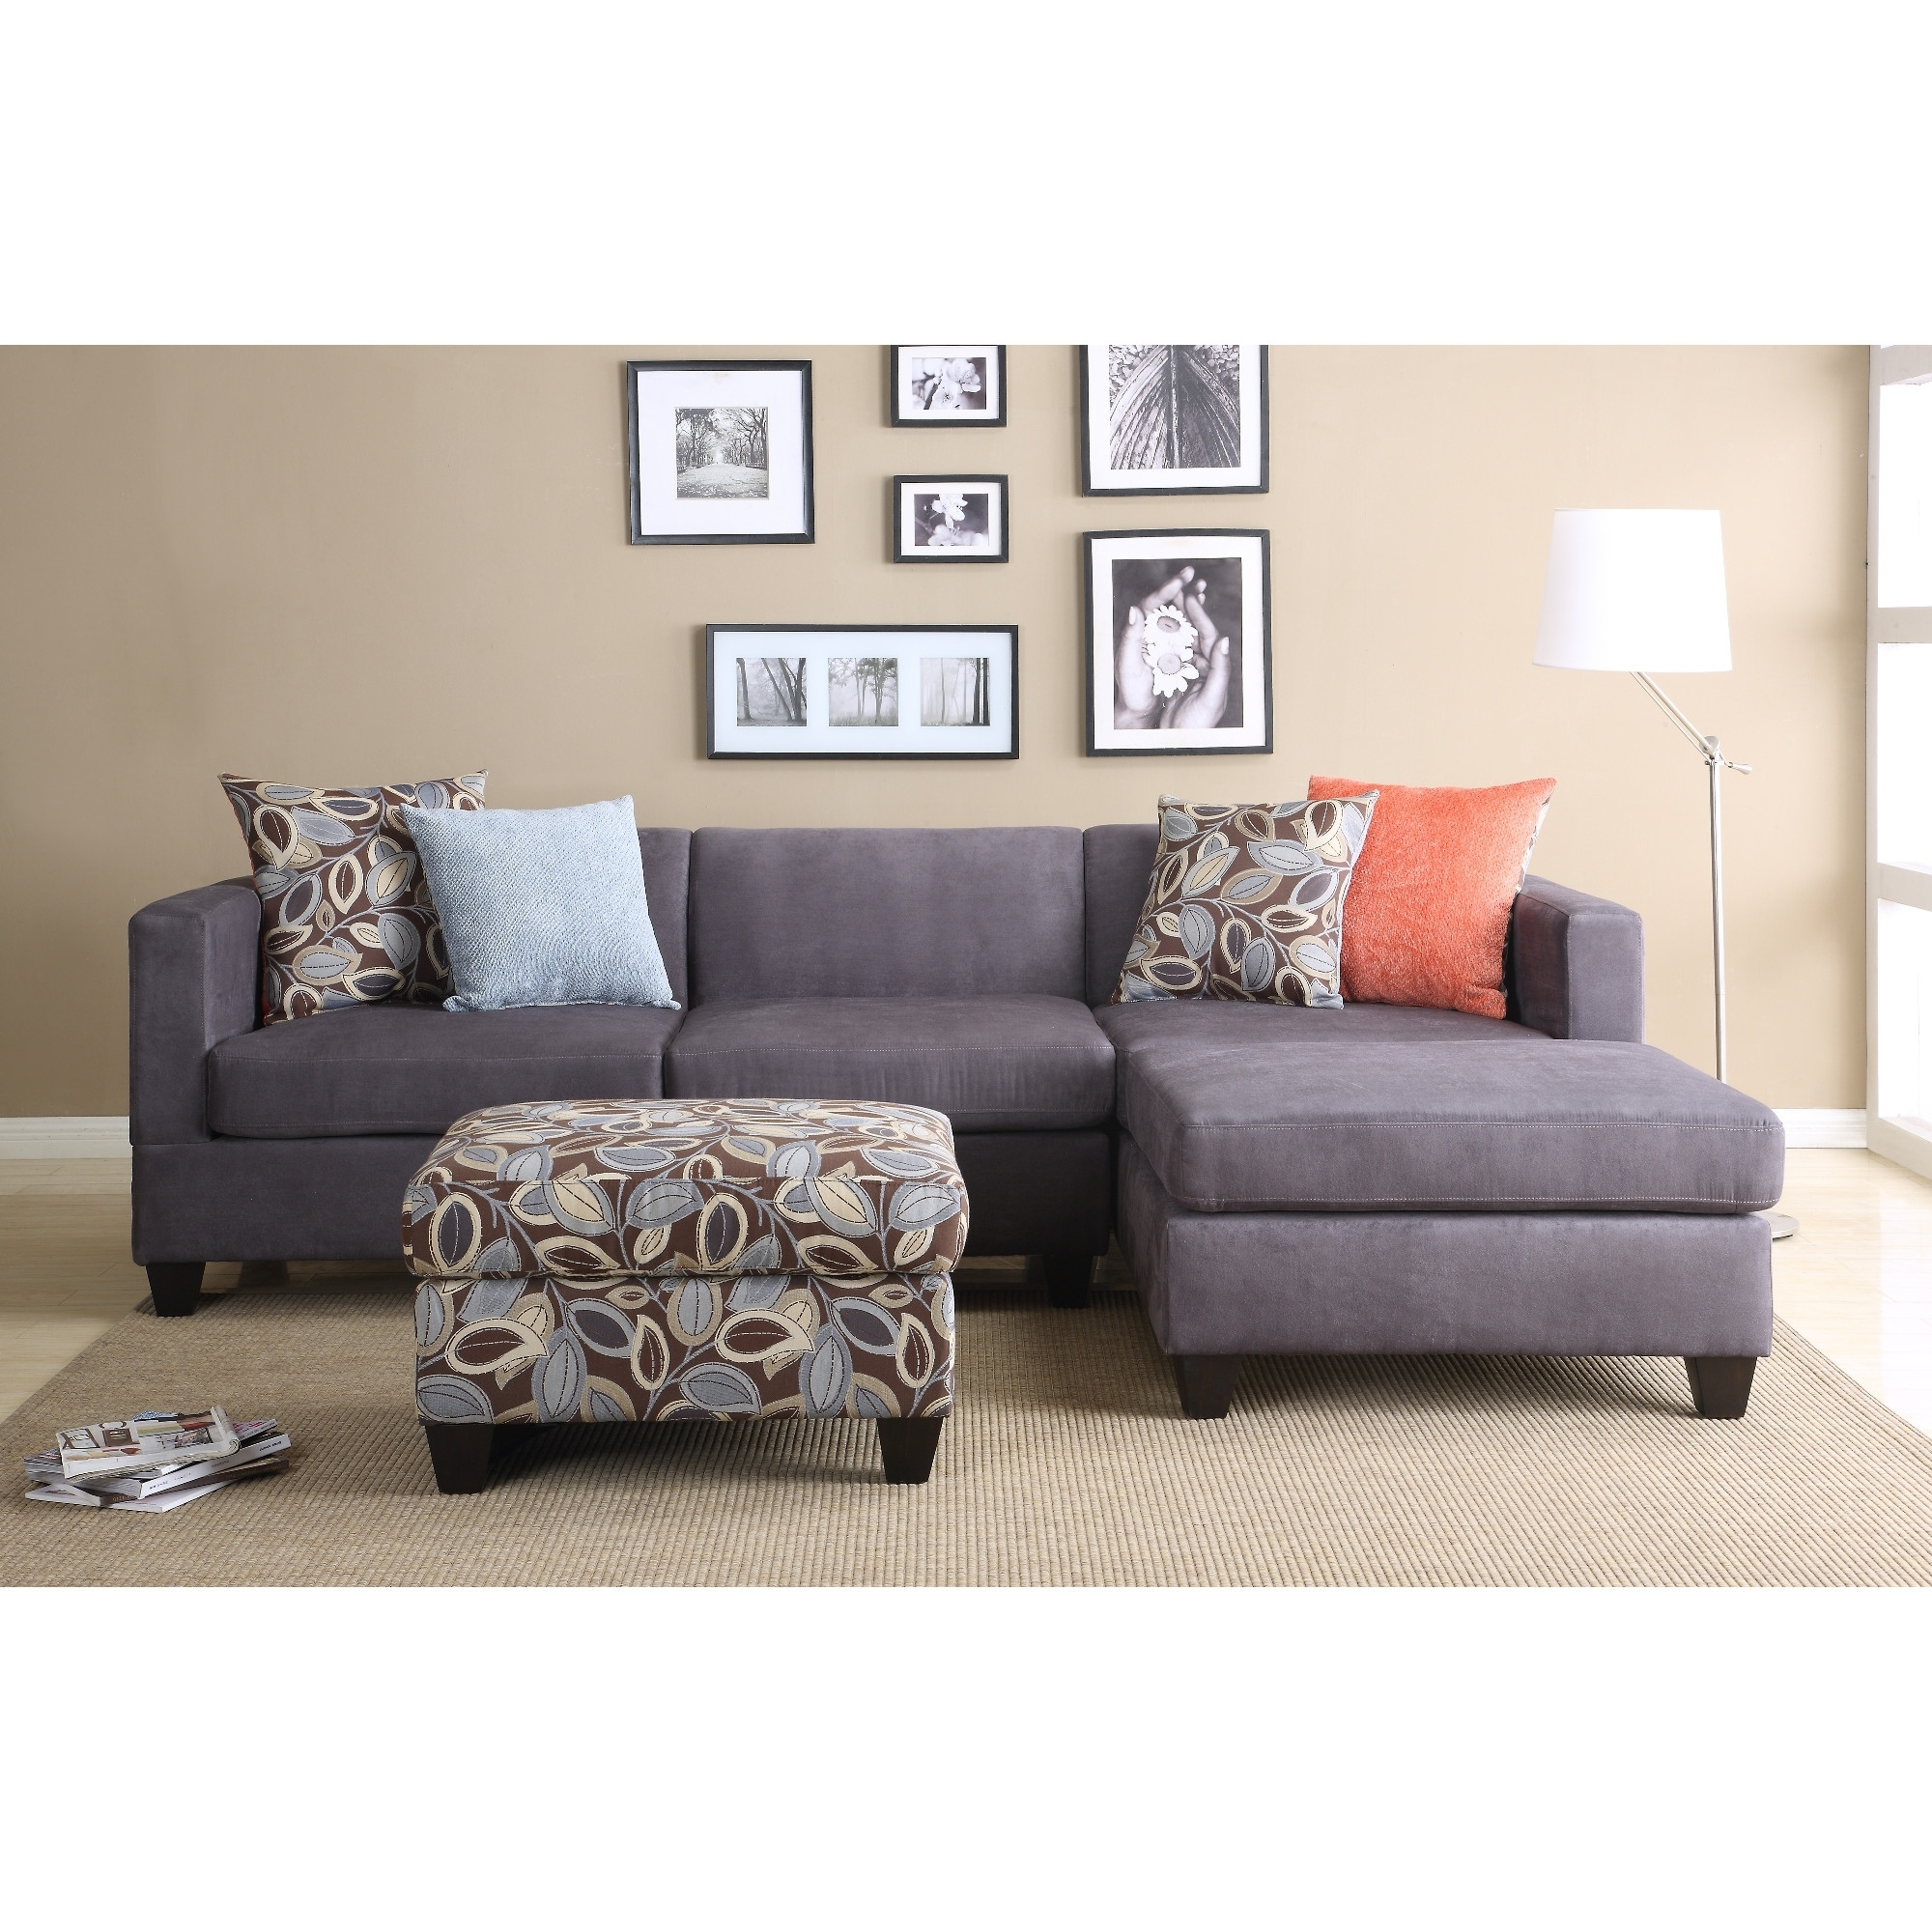 Fashionable Mini Sectional Sofas Within Furniture & Sofa: Perfect Small Spaces Configurable Sectional Sofa (View 17 of 20)